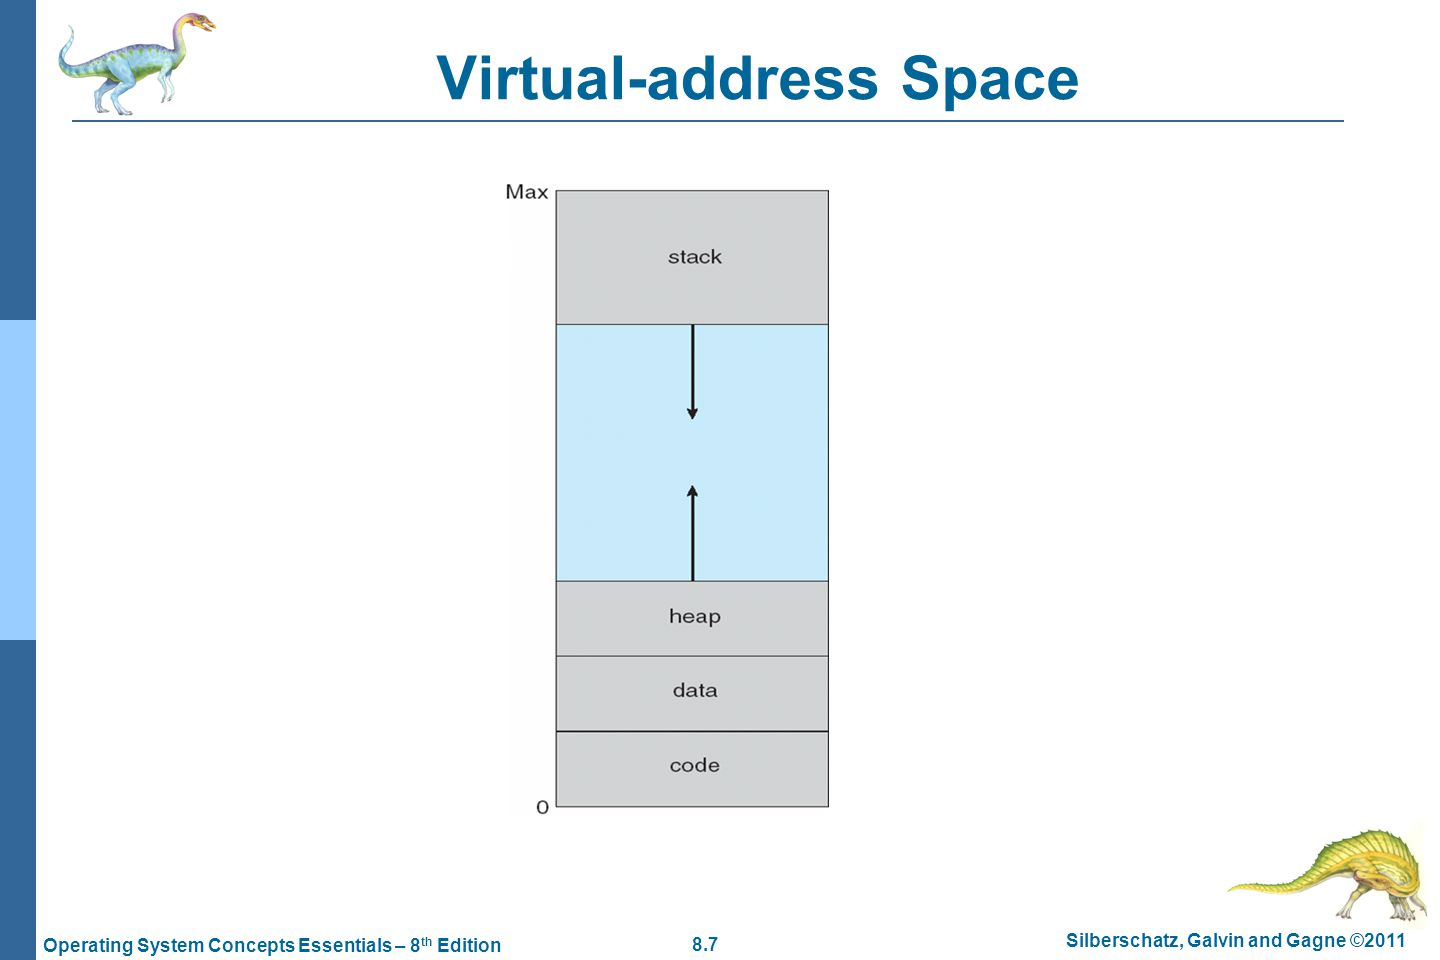 8.8 Silberschatz, Galvin and Gagne ©2011 Operating System Concepts Essentials – 8 th Edition Virtual Address Space Enables sparse address spaces with holes left for growth, dynamically linked libraries, etc System libraries shared via mapping into virtual address space Shared memory by mapping pages read-write into virtual address space Pages can be shared during fork(), speeding process creation